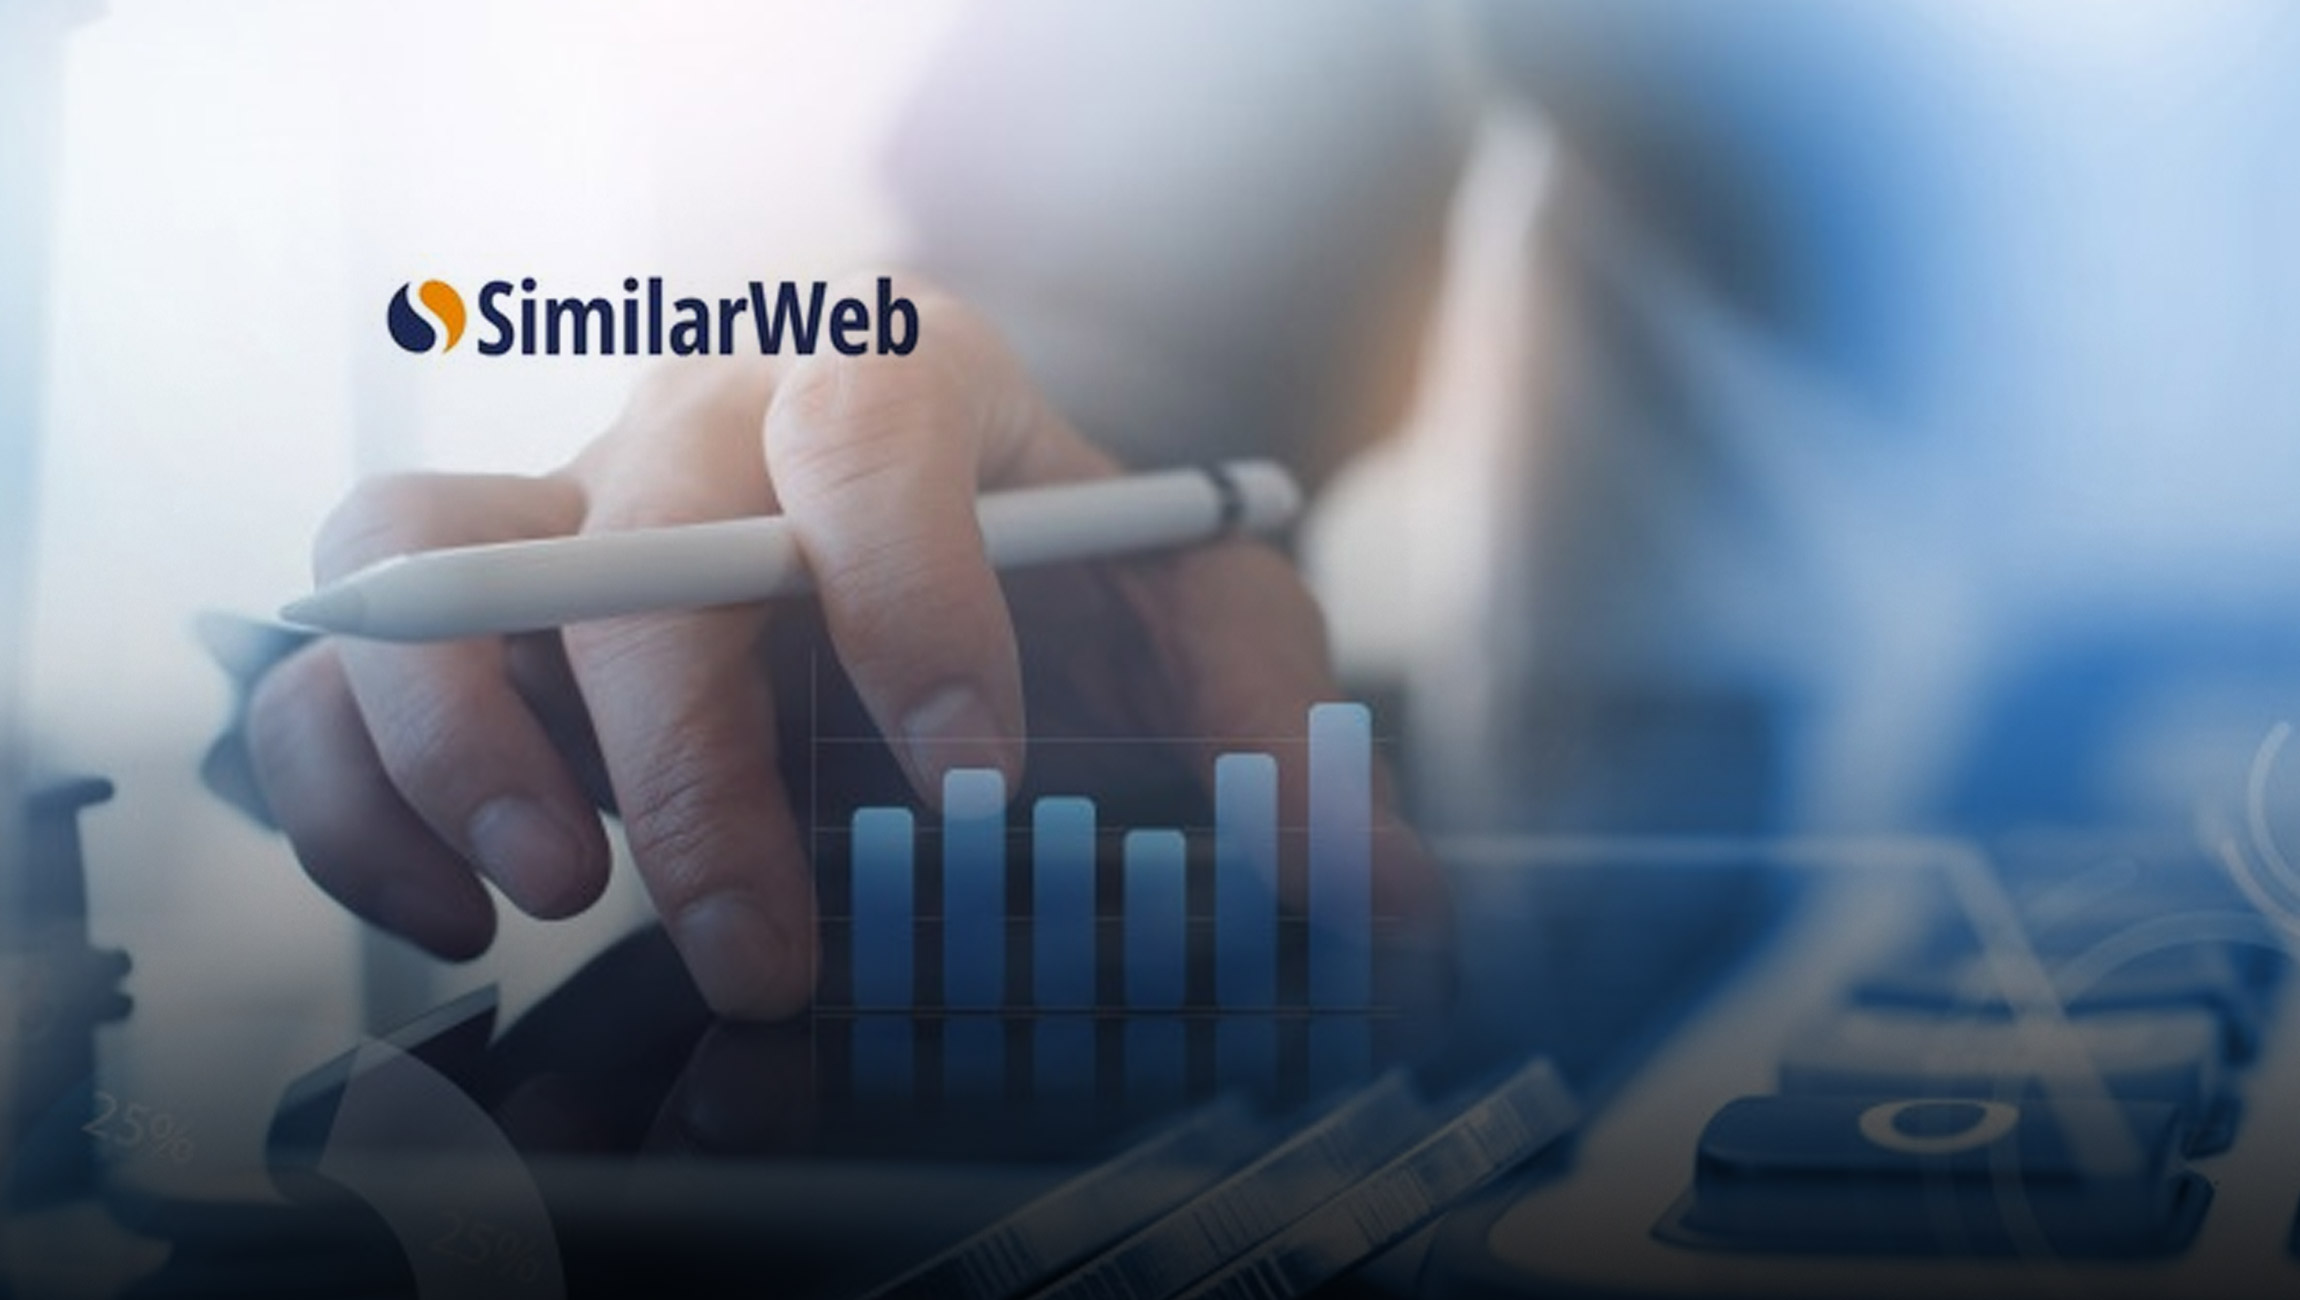 SimilarWeb Intelligence Report: Prime Day purchases increased 51% YoY